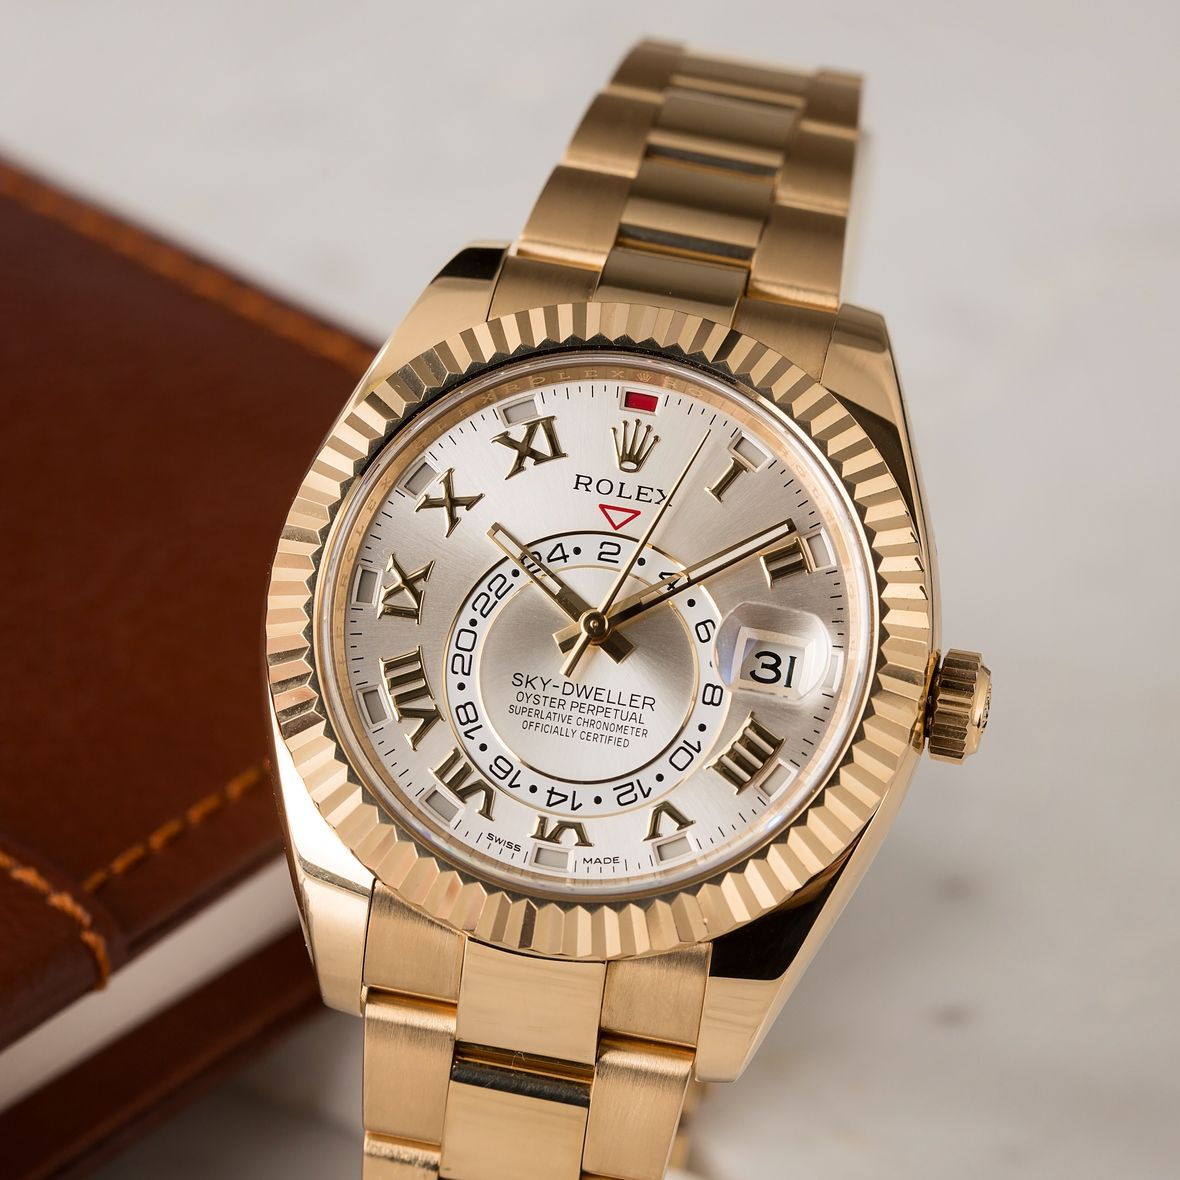 What Does a $50,000 Rolex Look Like?